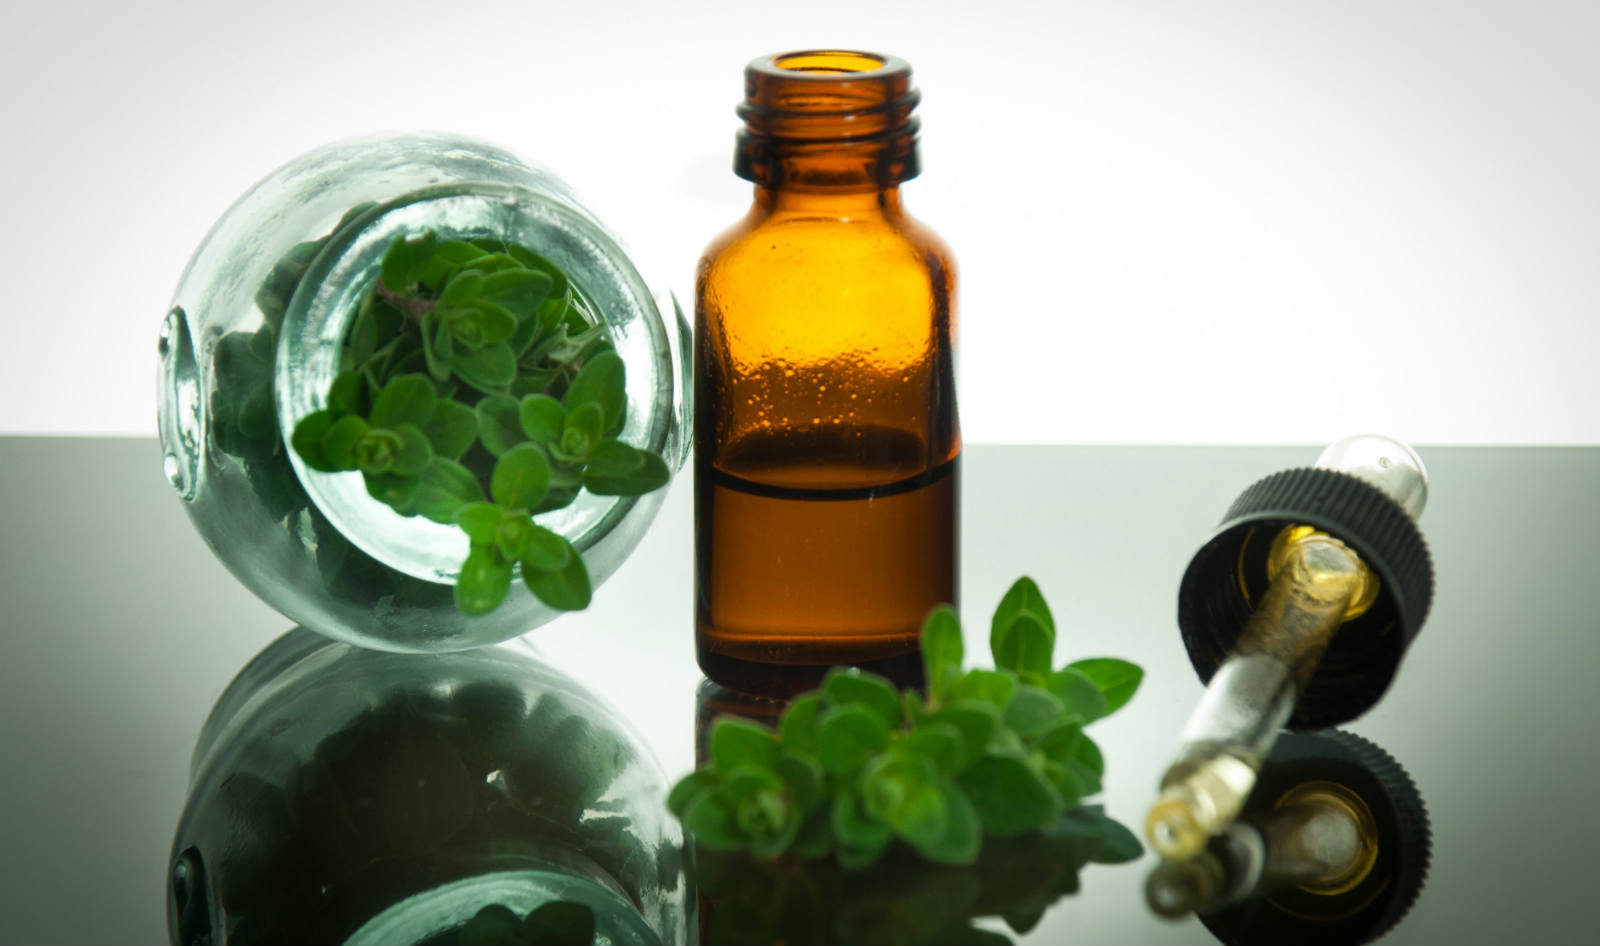 what can oil of oregano be used for